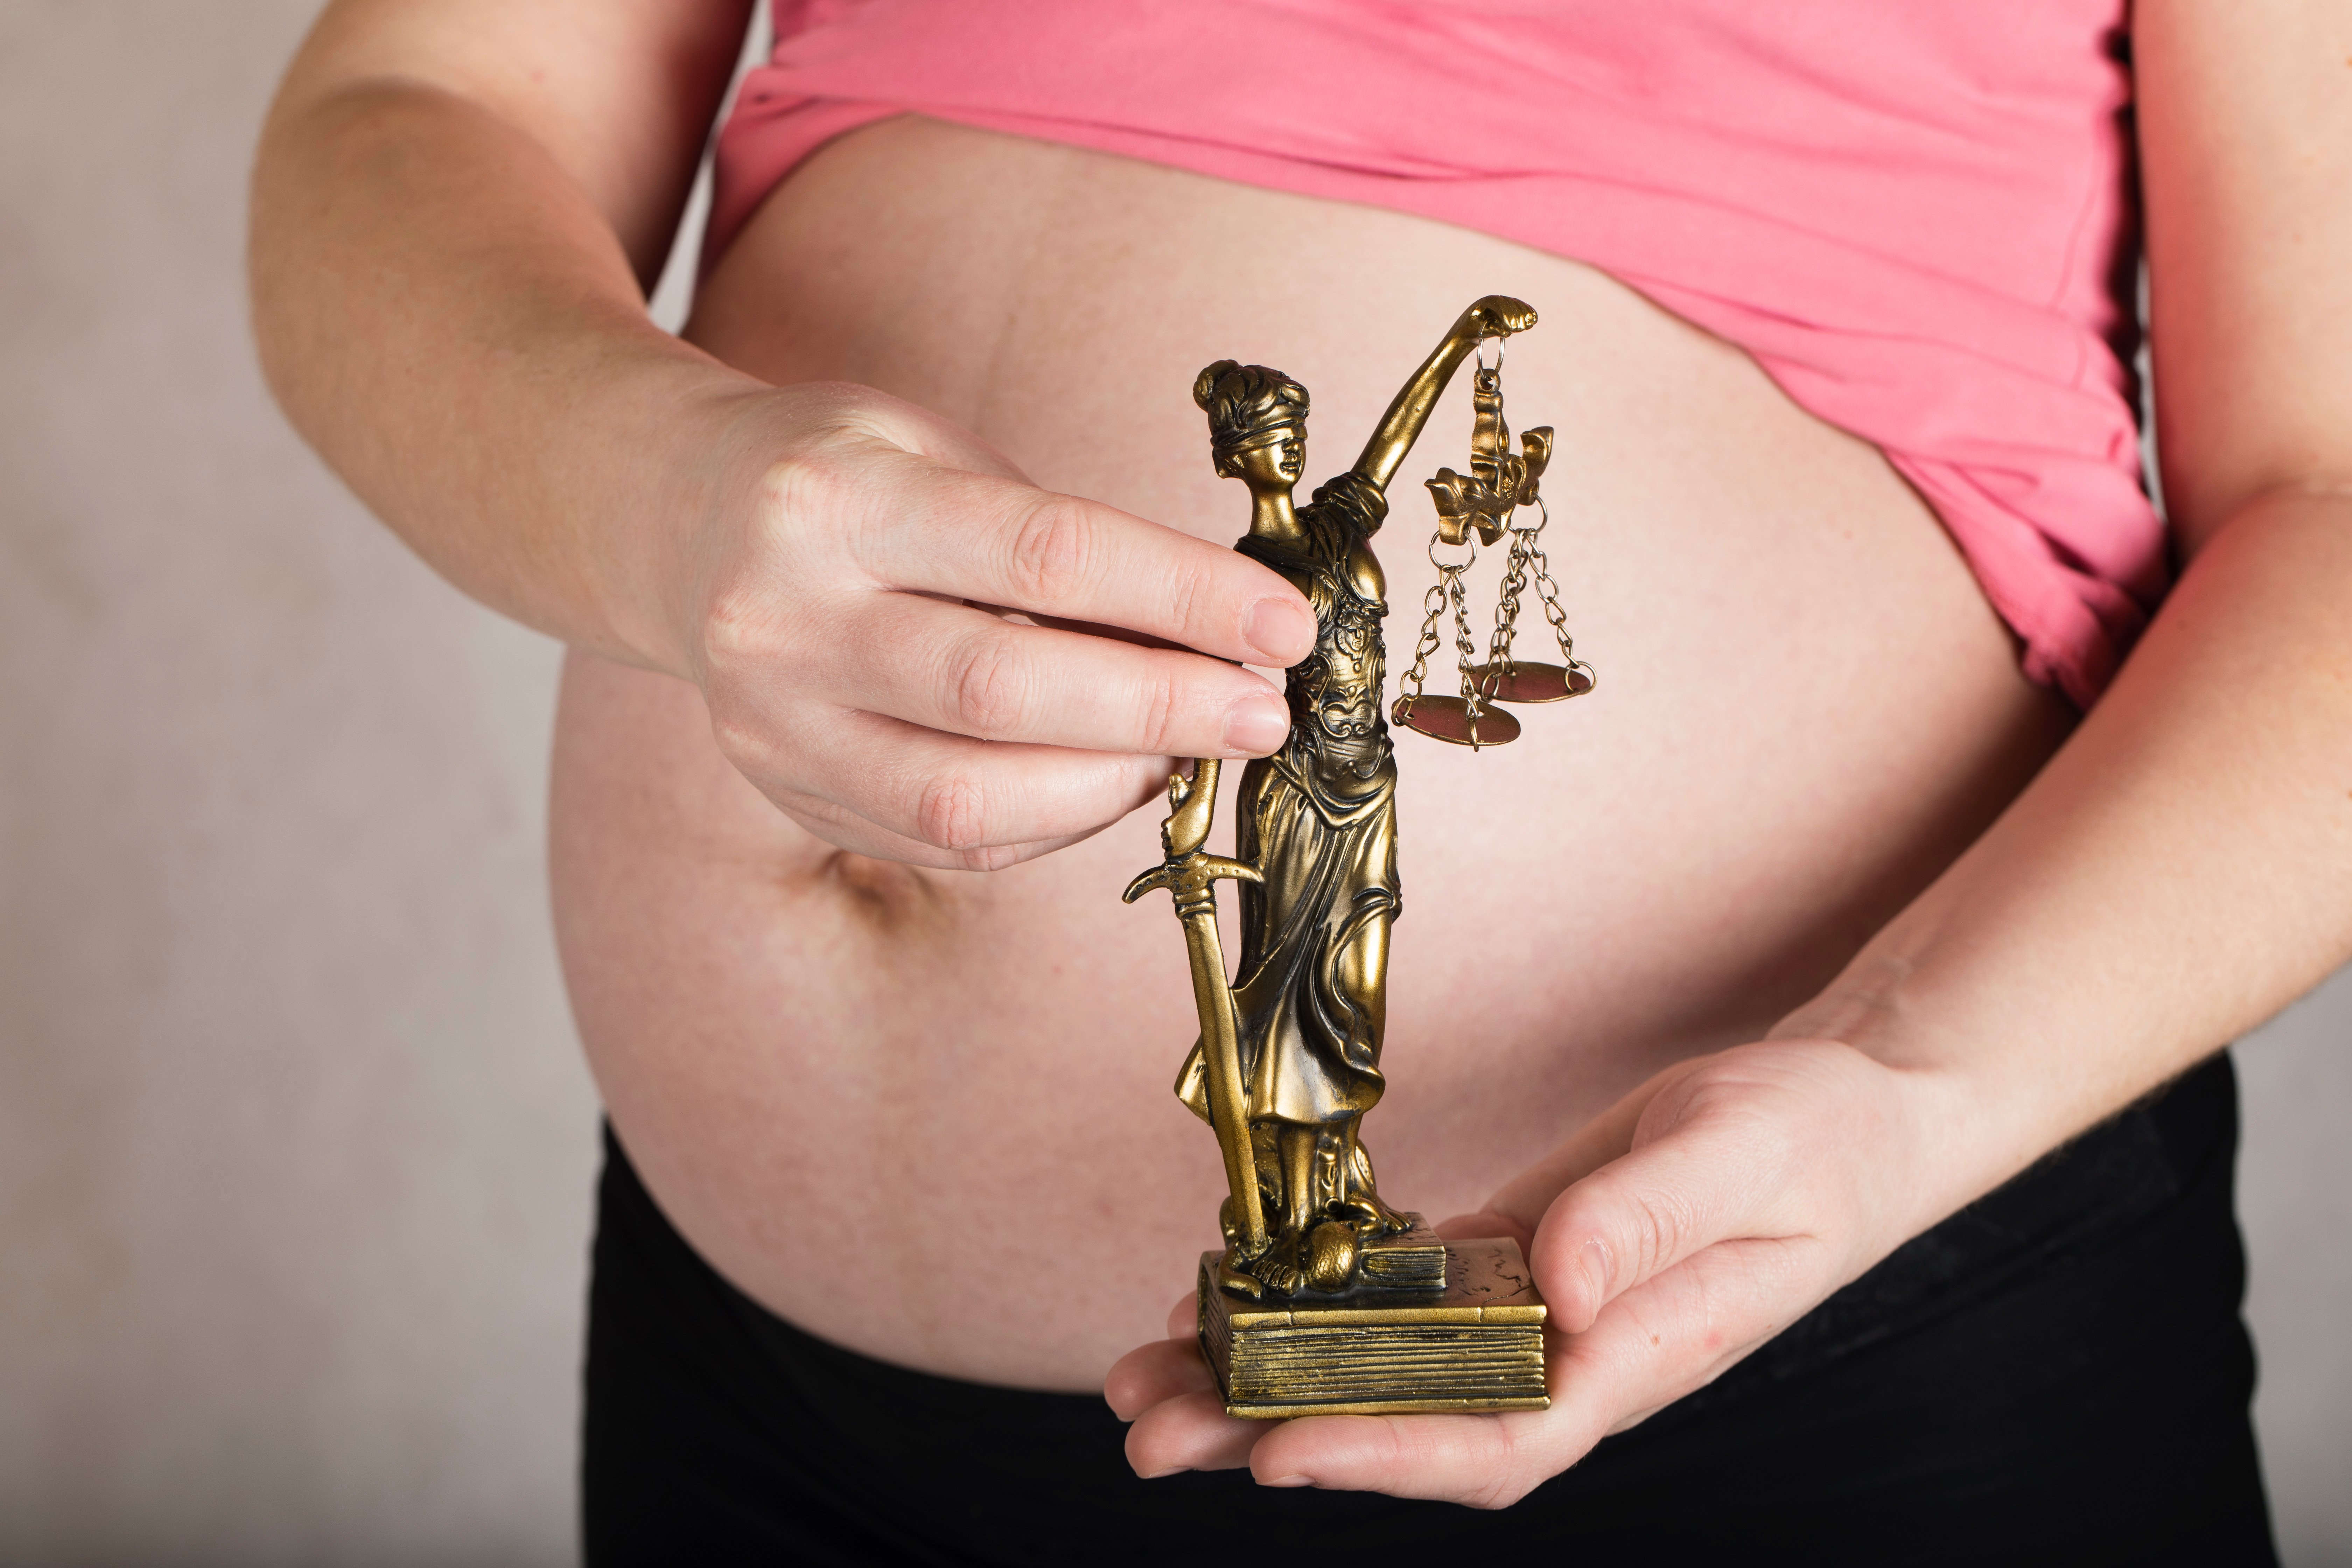 Woman with judge statue on pregnant stomach   Source: Shutterstock